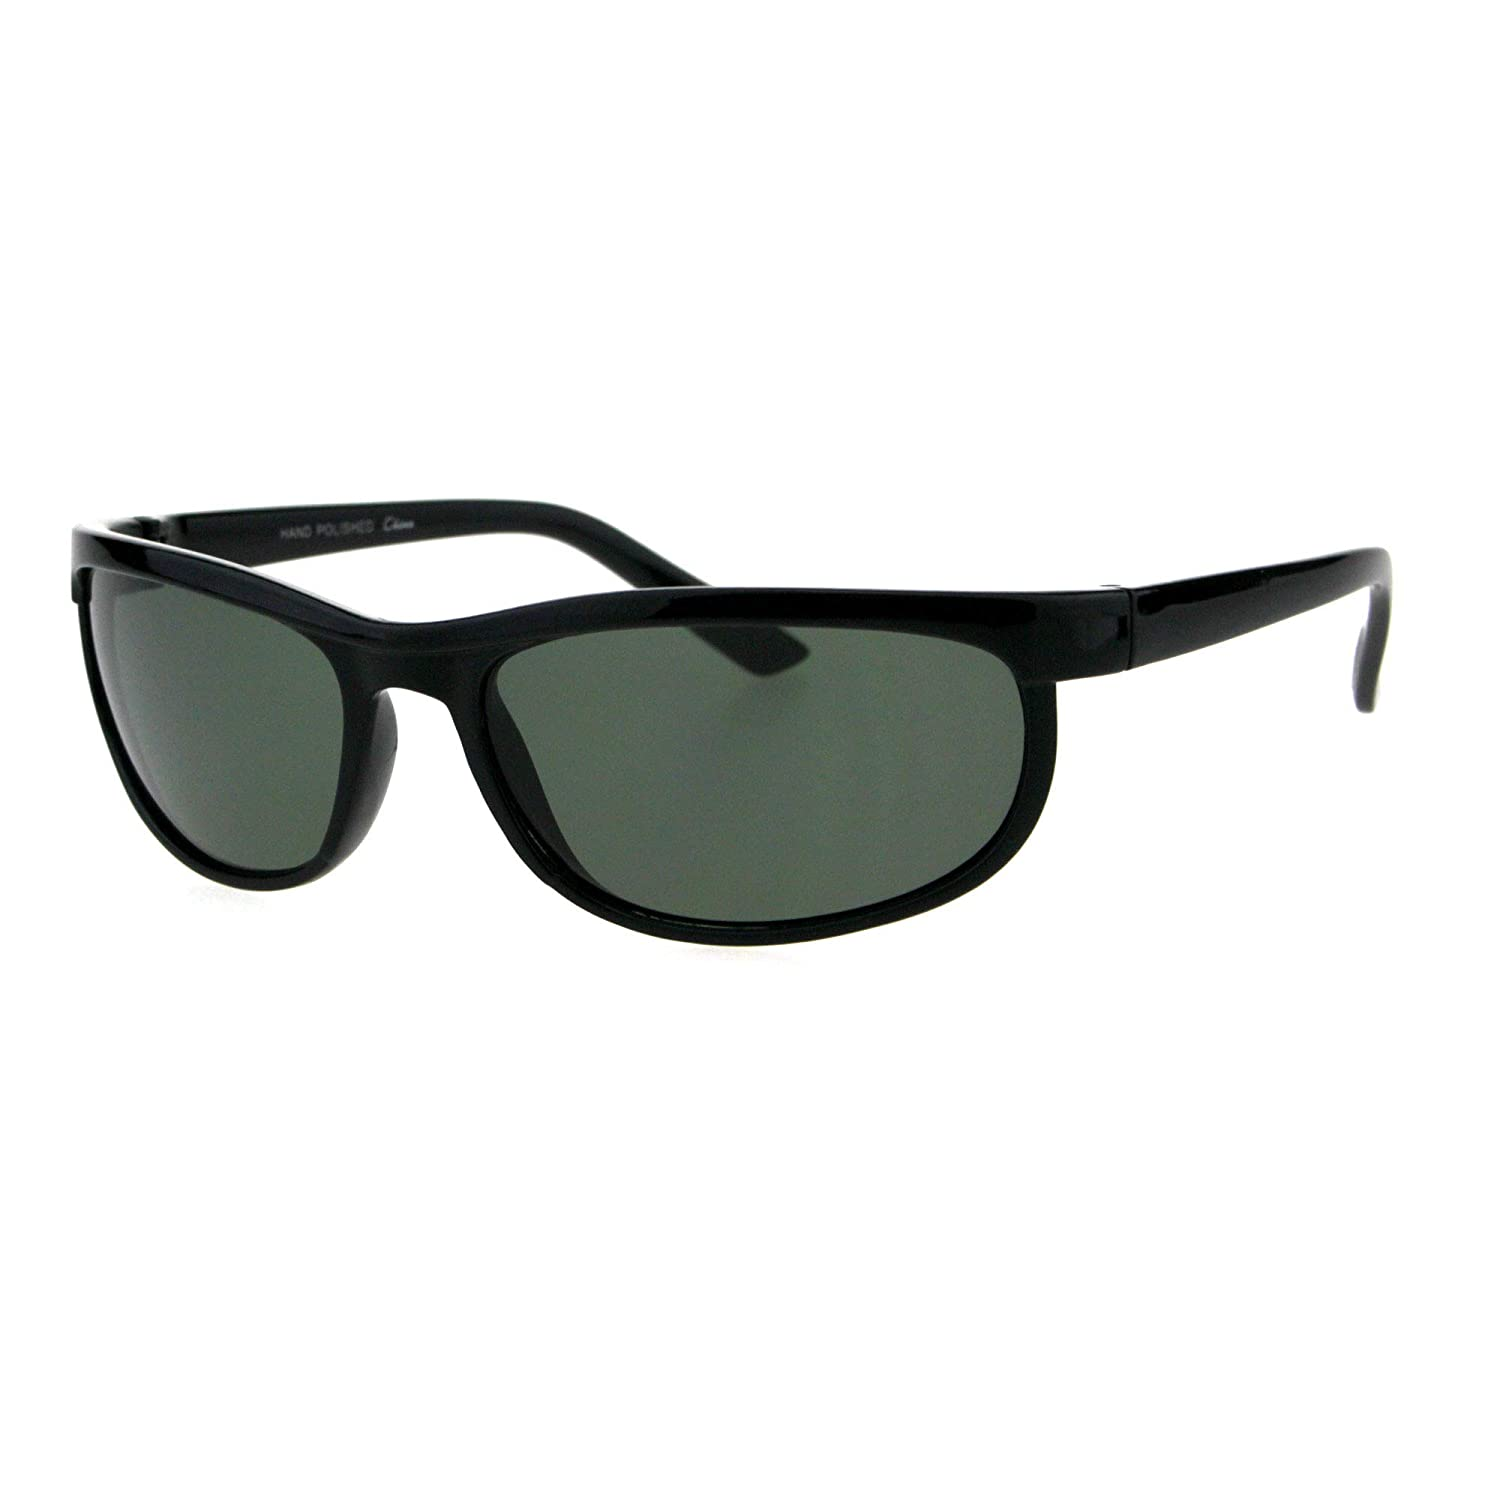 21d43f242e9 Amazon.com  Mens Tempered Glass Plastic Biker Style Rectangular Oval Sunglasses  Black Green  Clothing